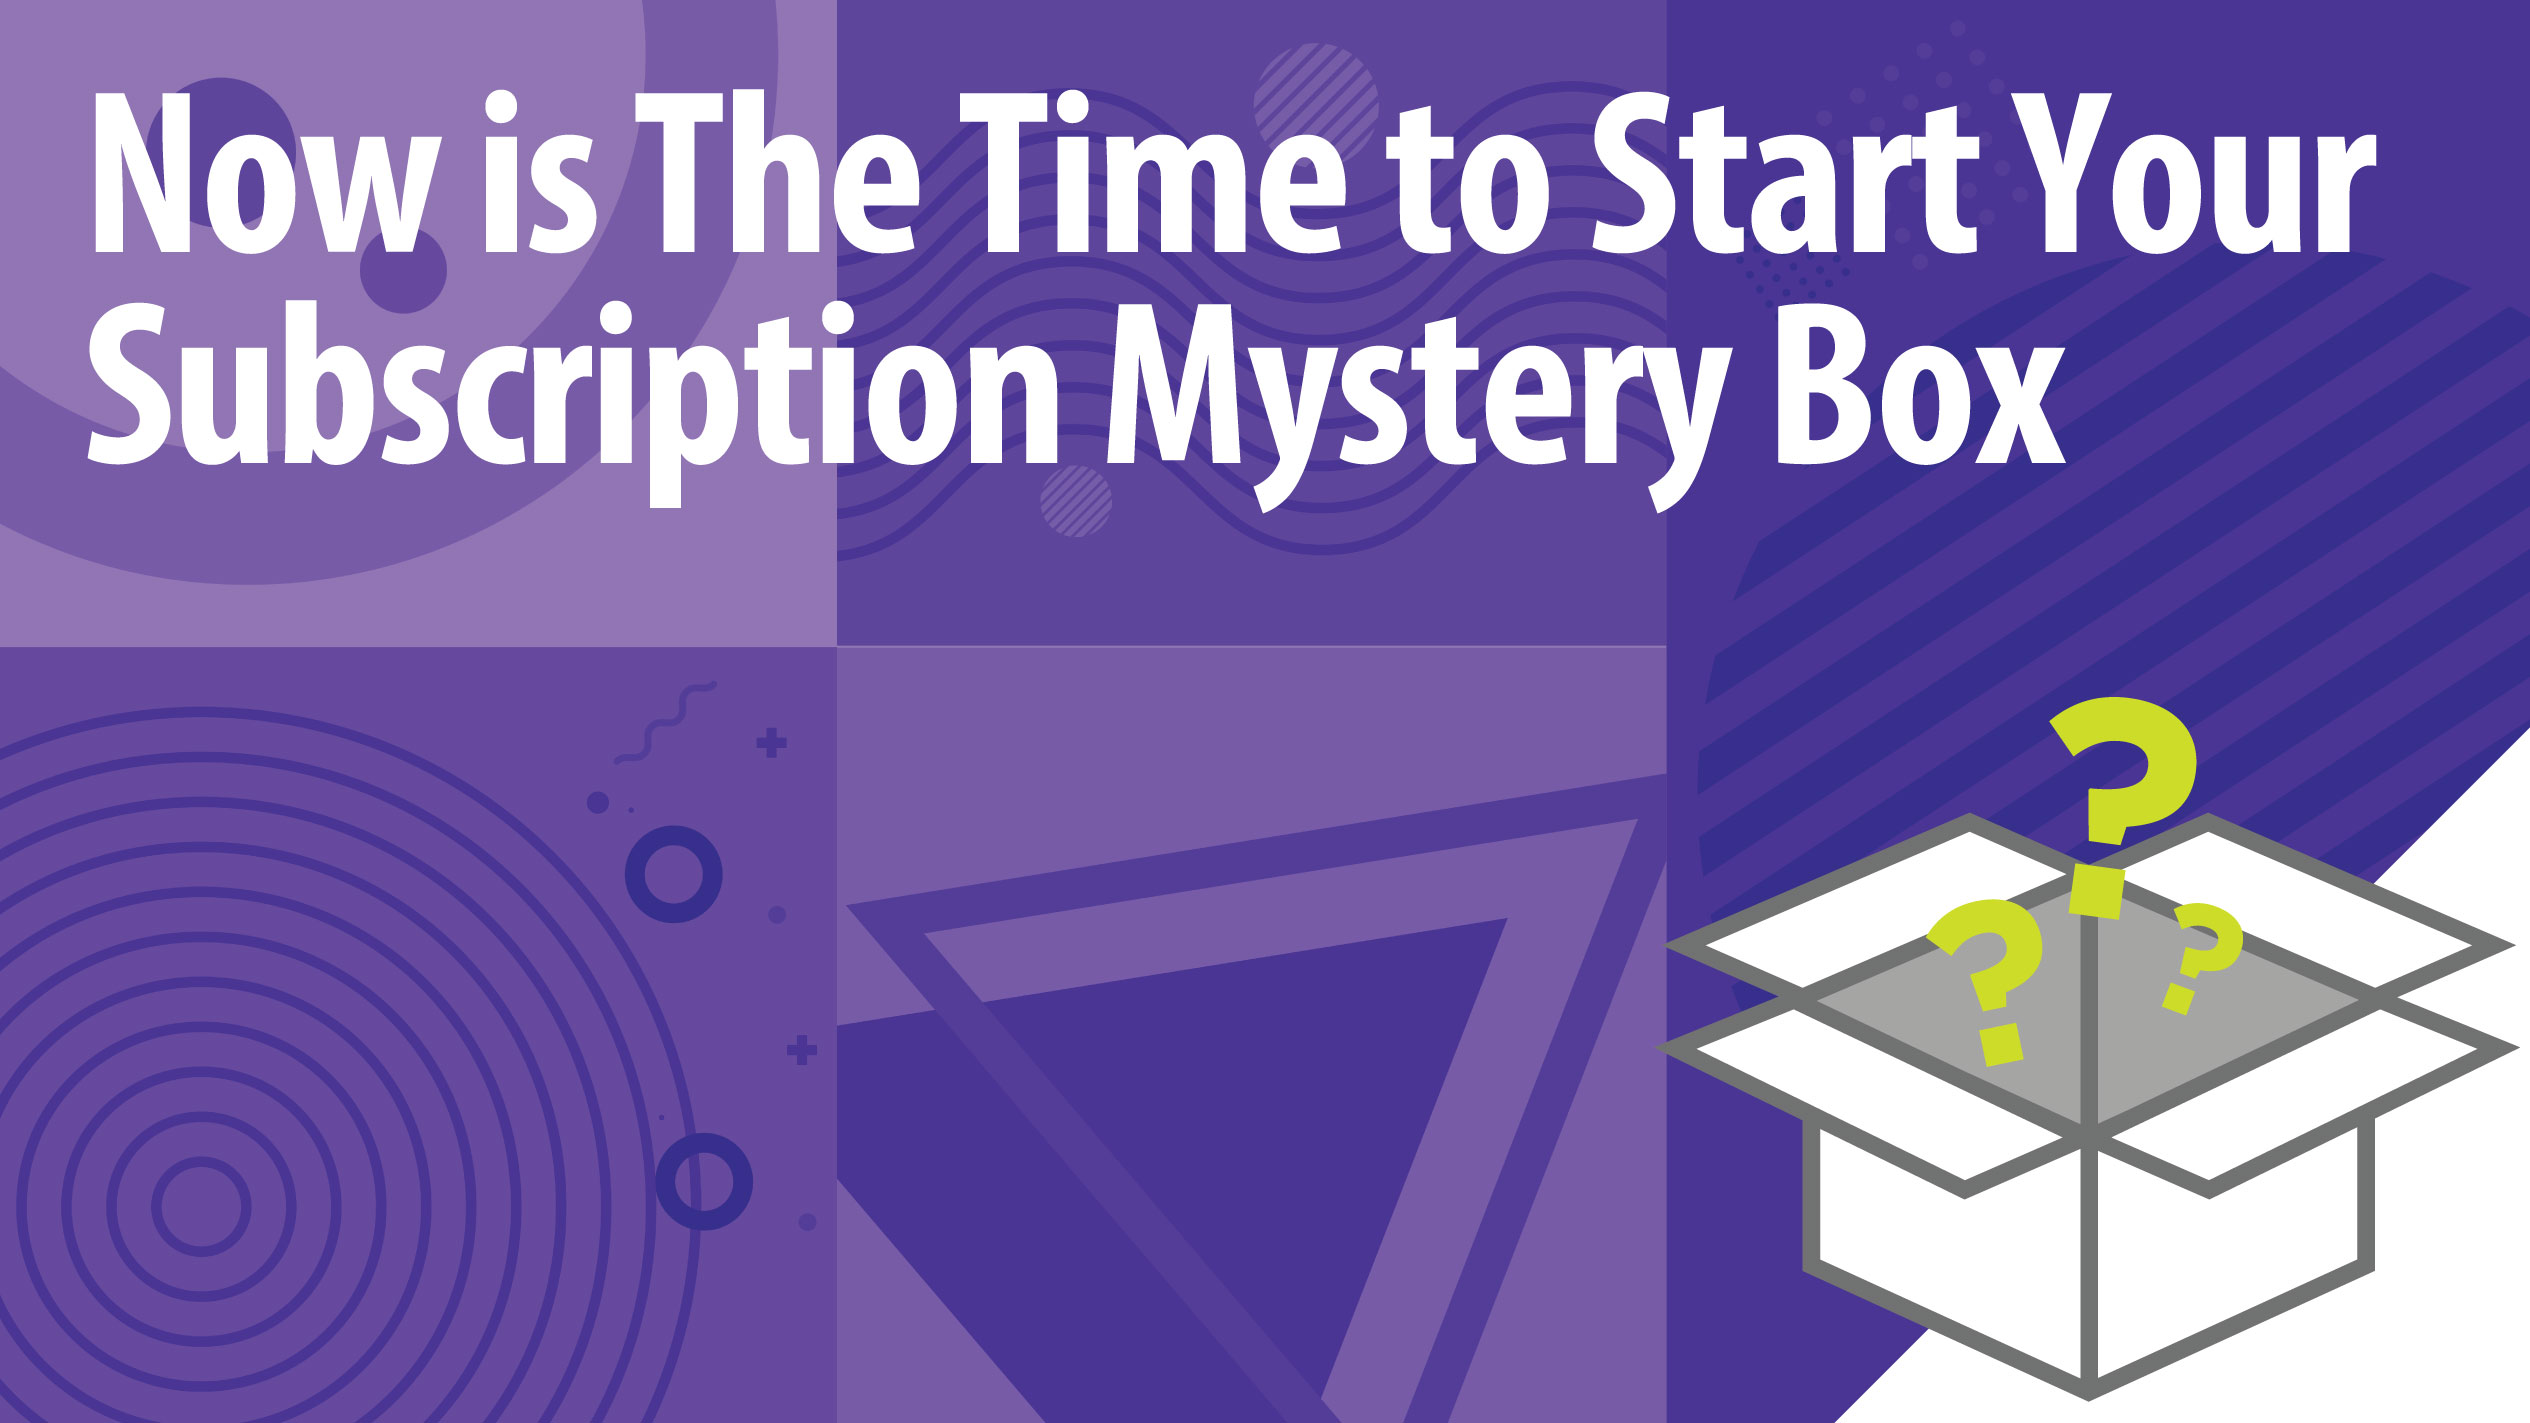 Now is The Time to Start Your Subscription Mystery Box